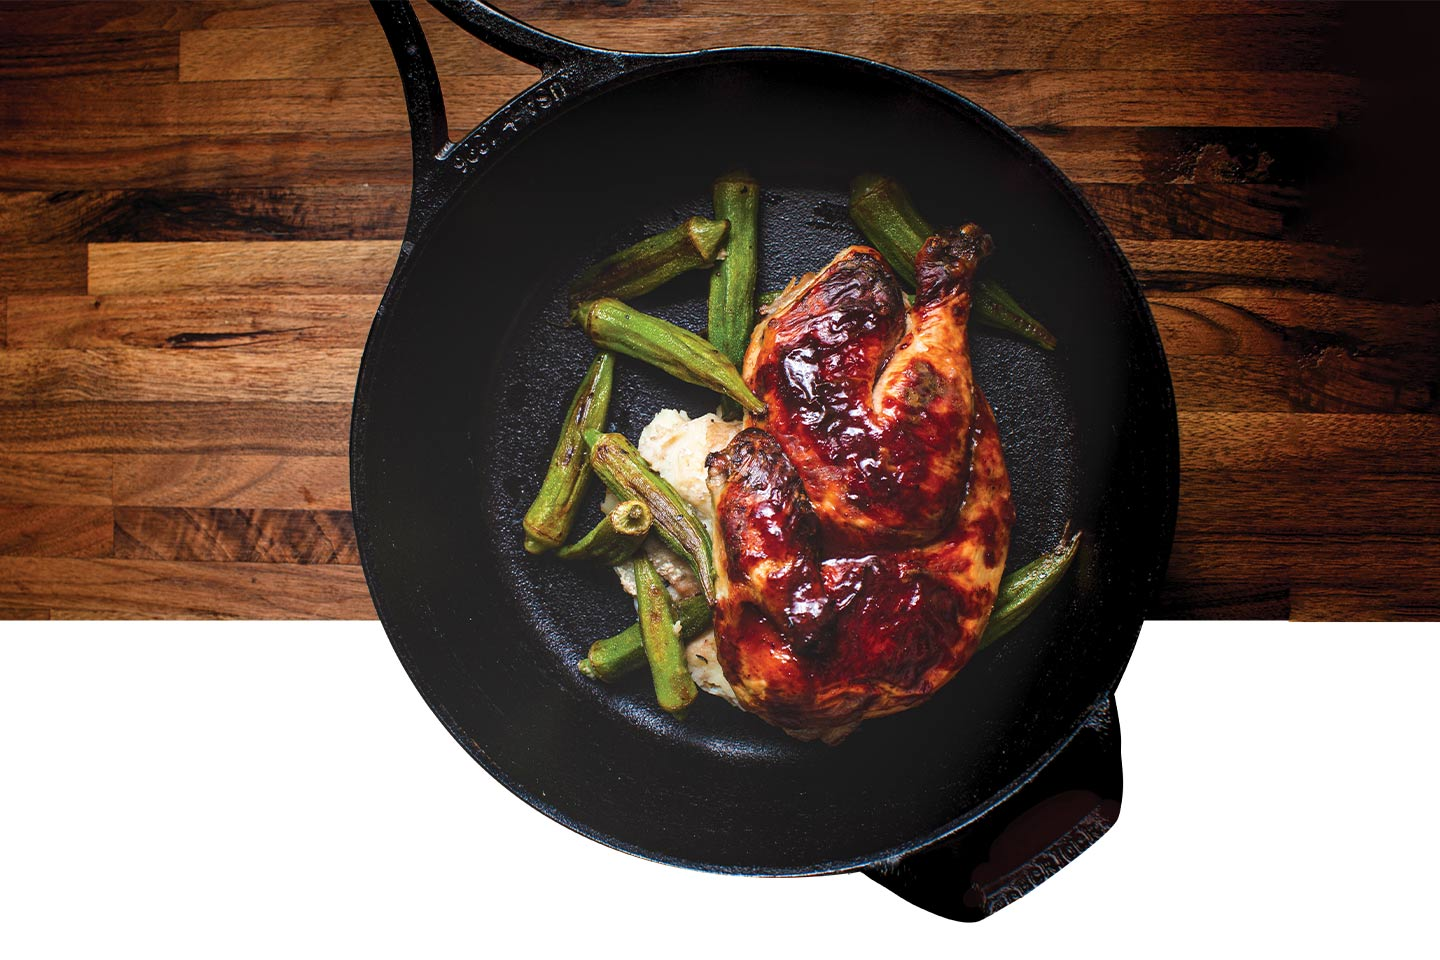 muscadine gastrique on a chicken breast with okra in a cast iron skillet from 1885